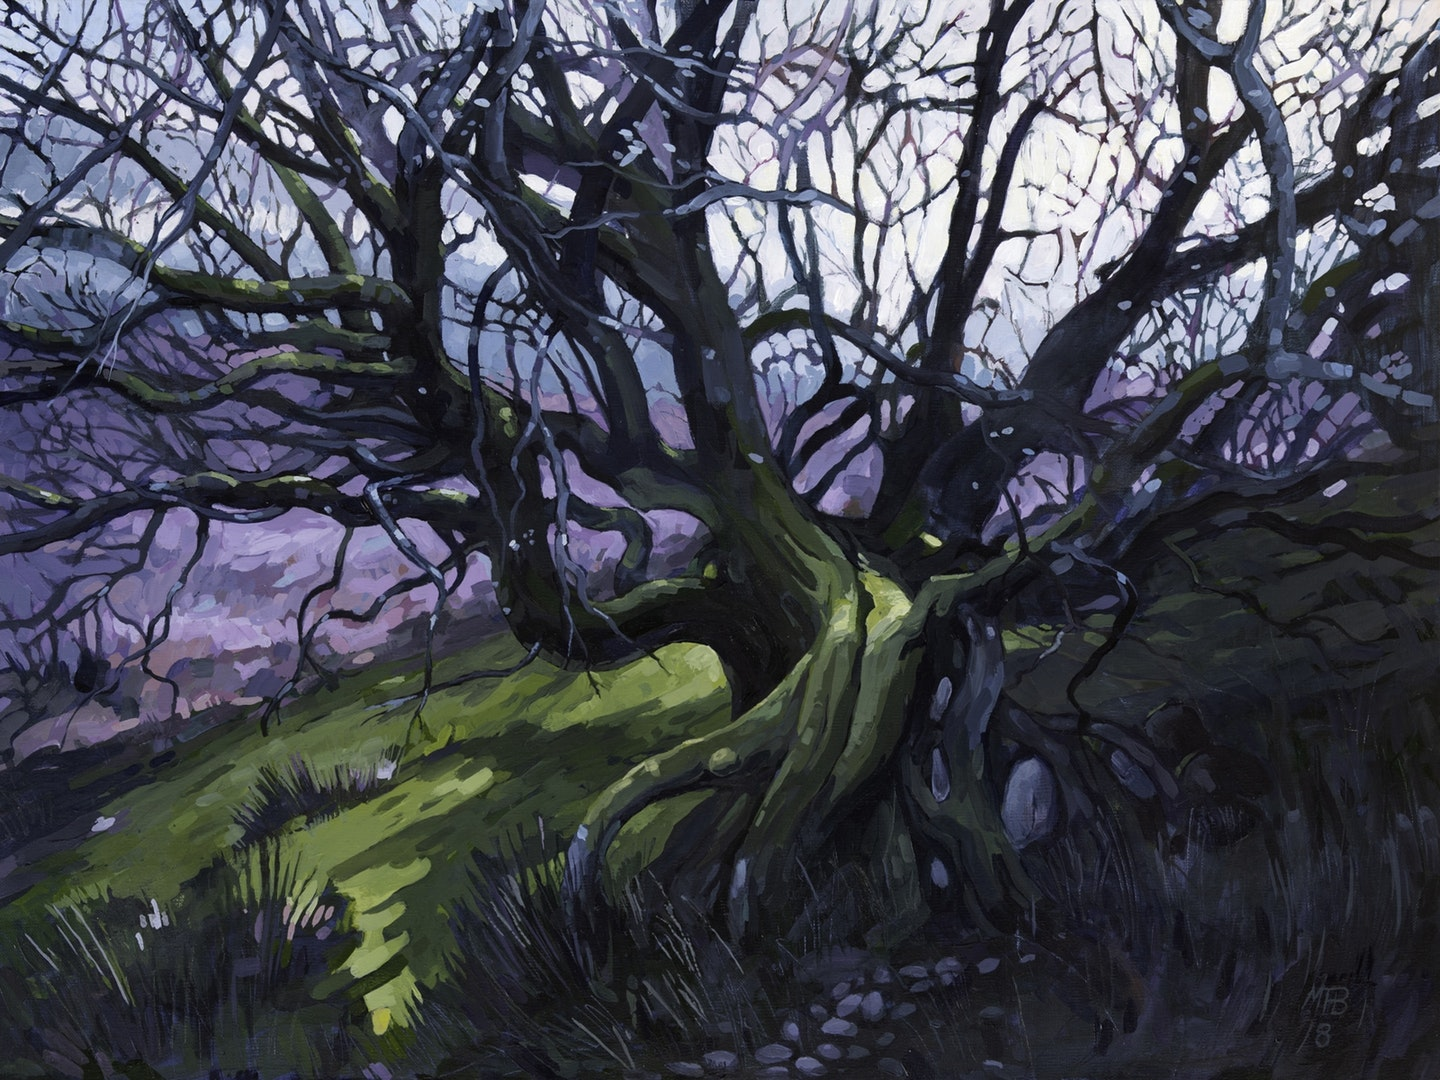 'Twisting Tree', Martin Truefitt-Baker, Acrylic paint on linen, 46 x 61 cm